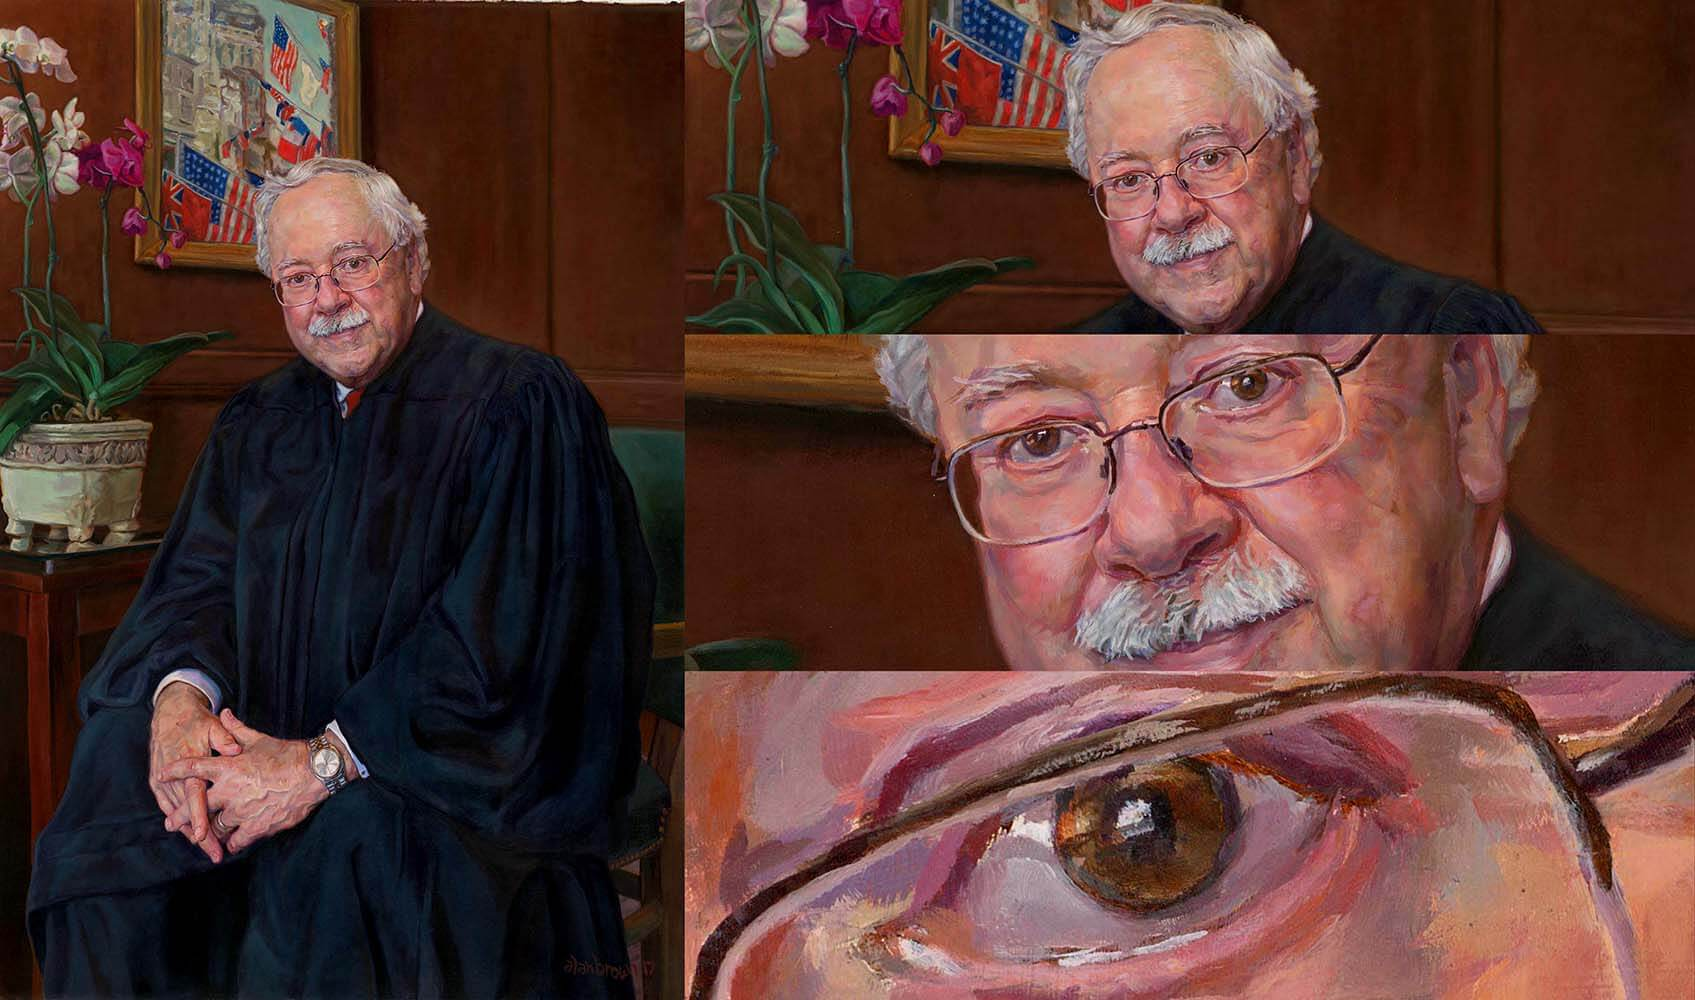 Artist Alan Brown portrait of a Judge scanned by Chica Prints on a large flatbed scanner